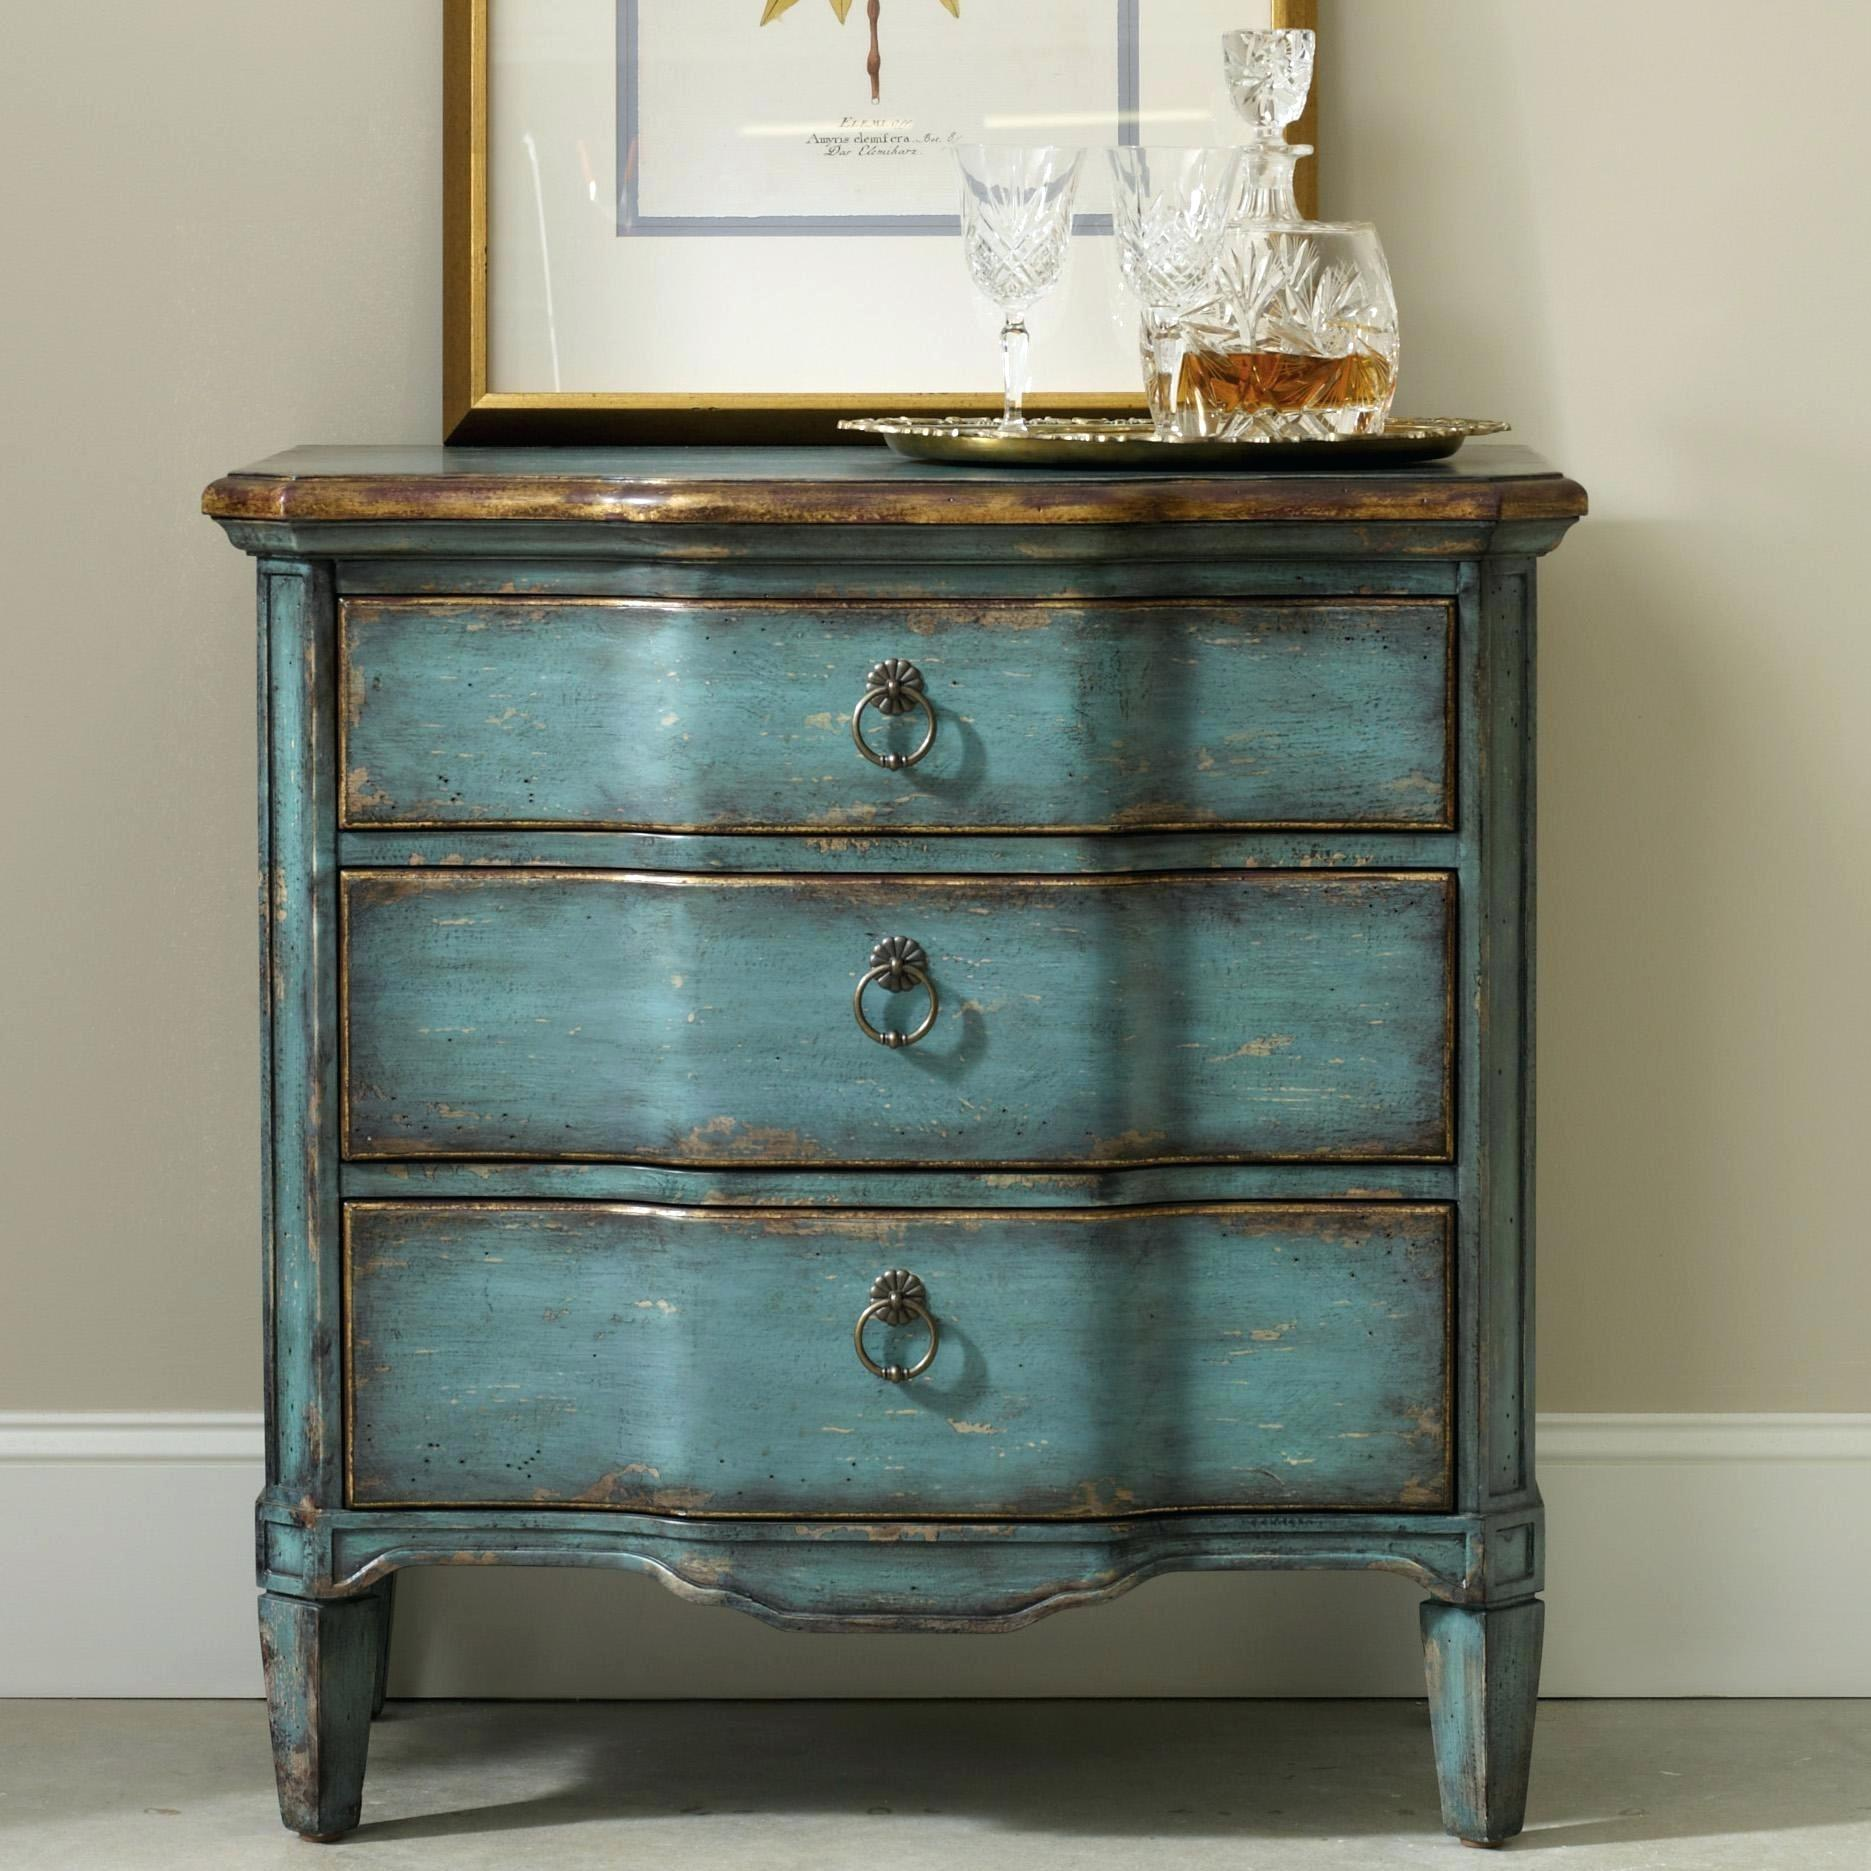 accent furniture for small spaces hooker living room accents three drawer turquoise chest with shaped front bedroom ideas tables wall side table designer lamps valet metal reducer